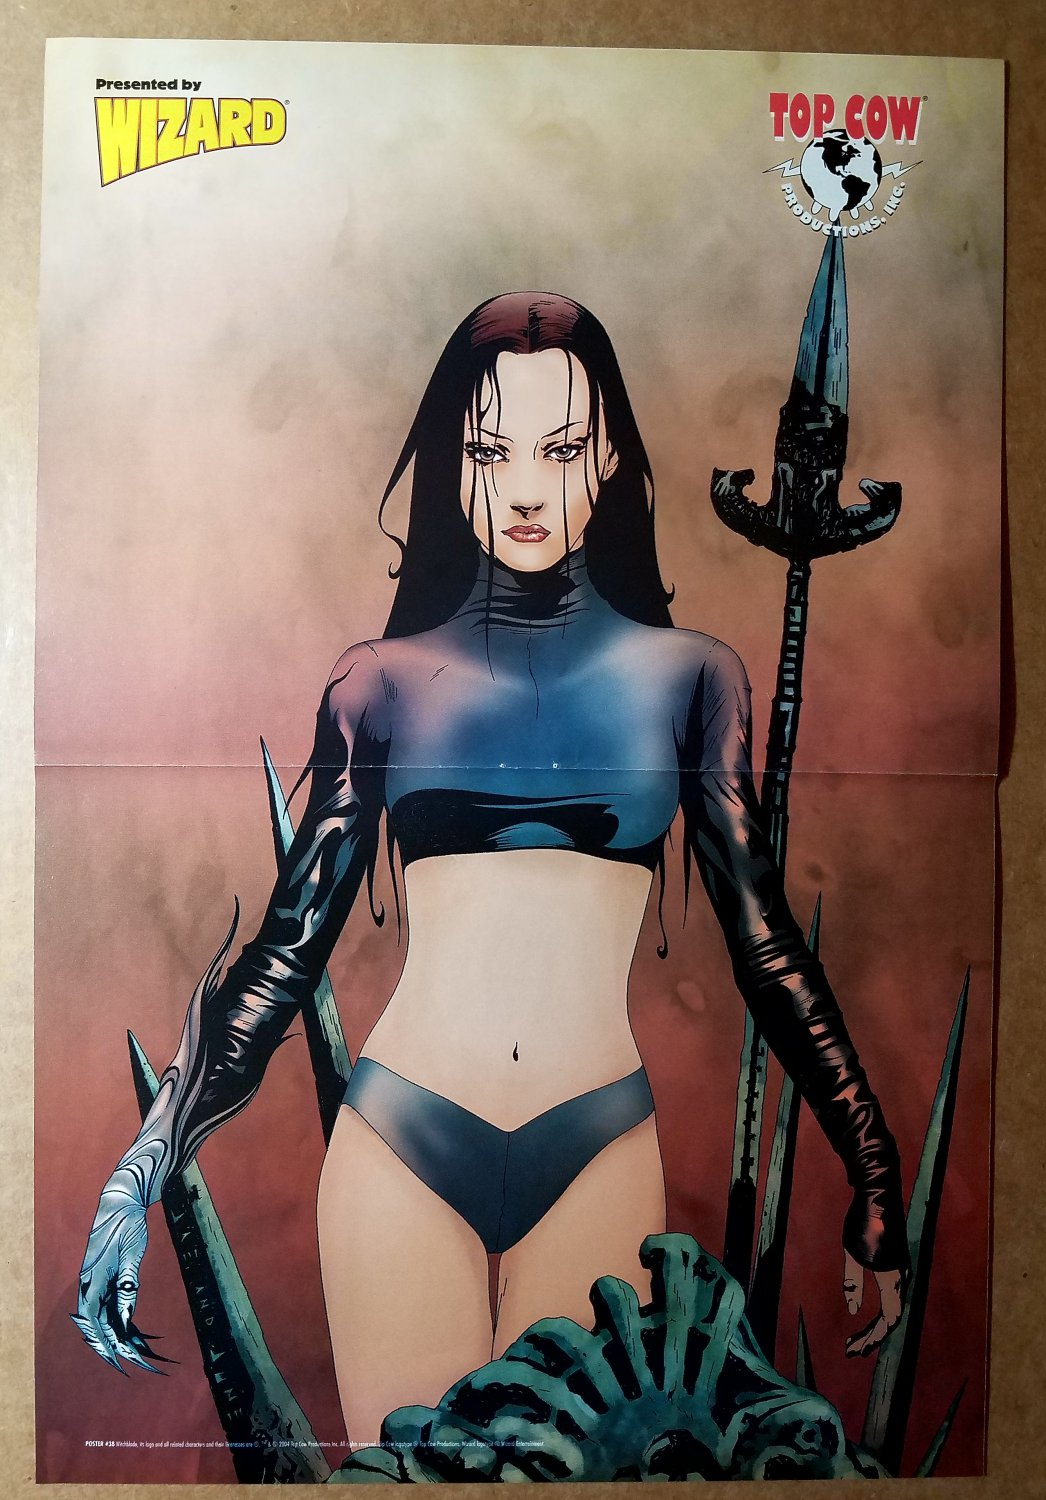 Witchblade Top Cow Comics Poster by Jae Lee